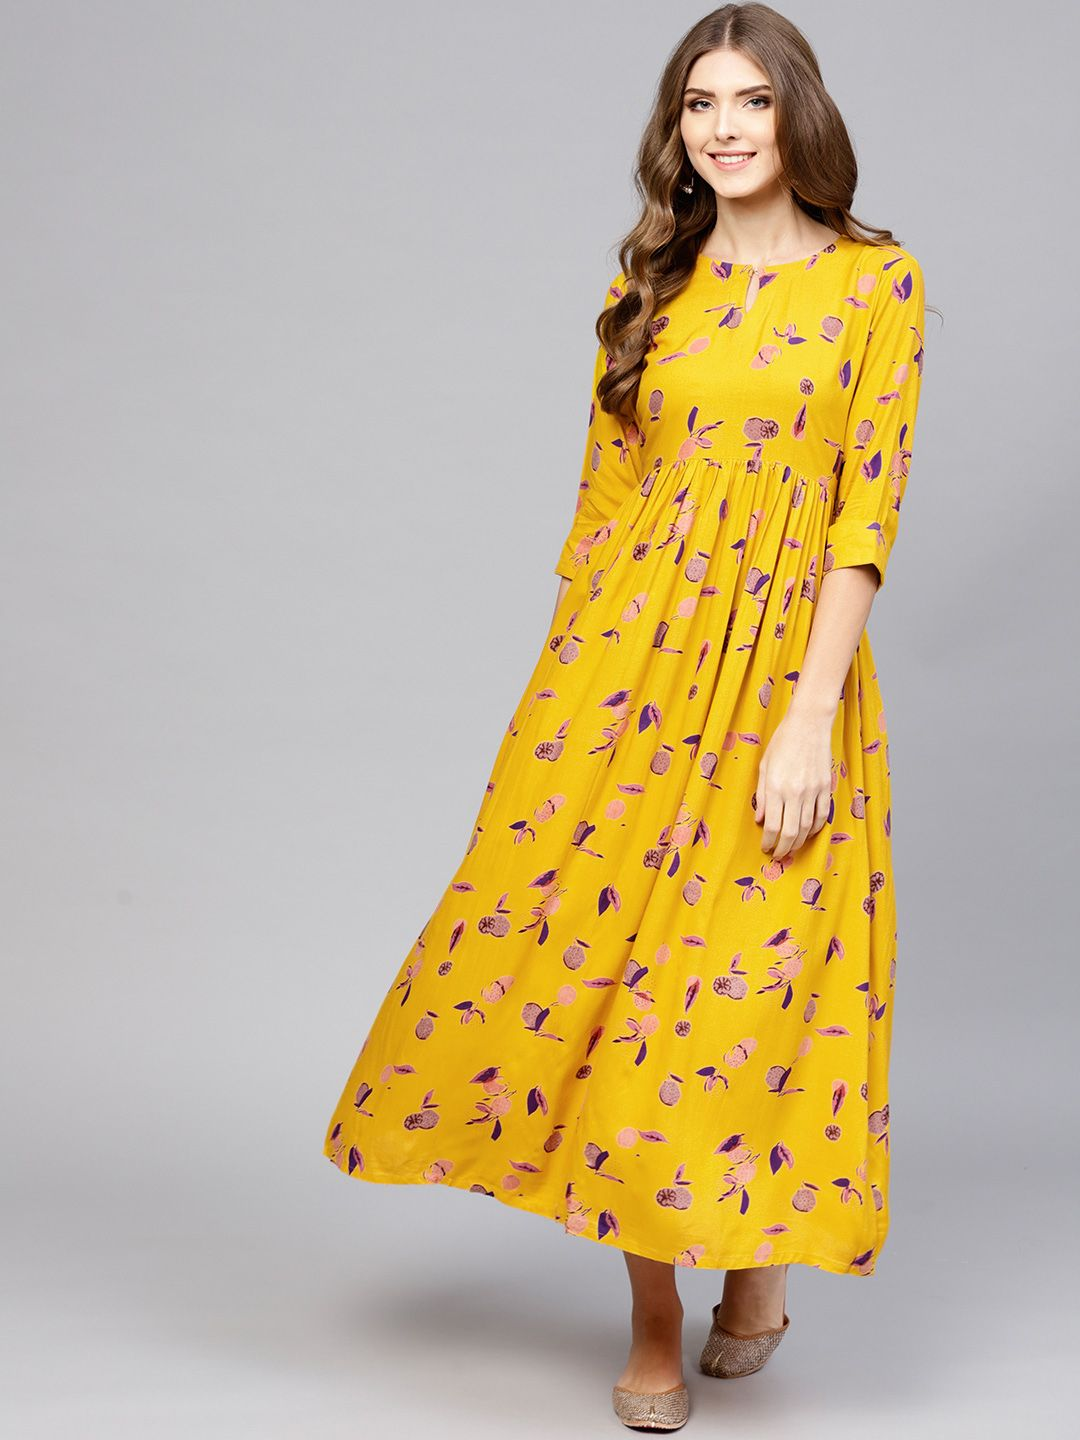 07bb1c9c26 Buy Libas Women Yellow Printed Maxi Dress - Dresses for Women 7719129 |  Myntra